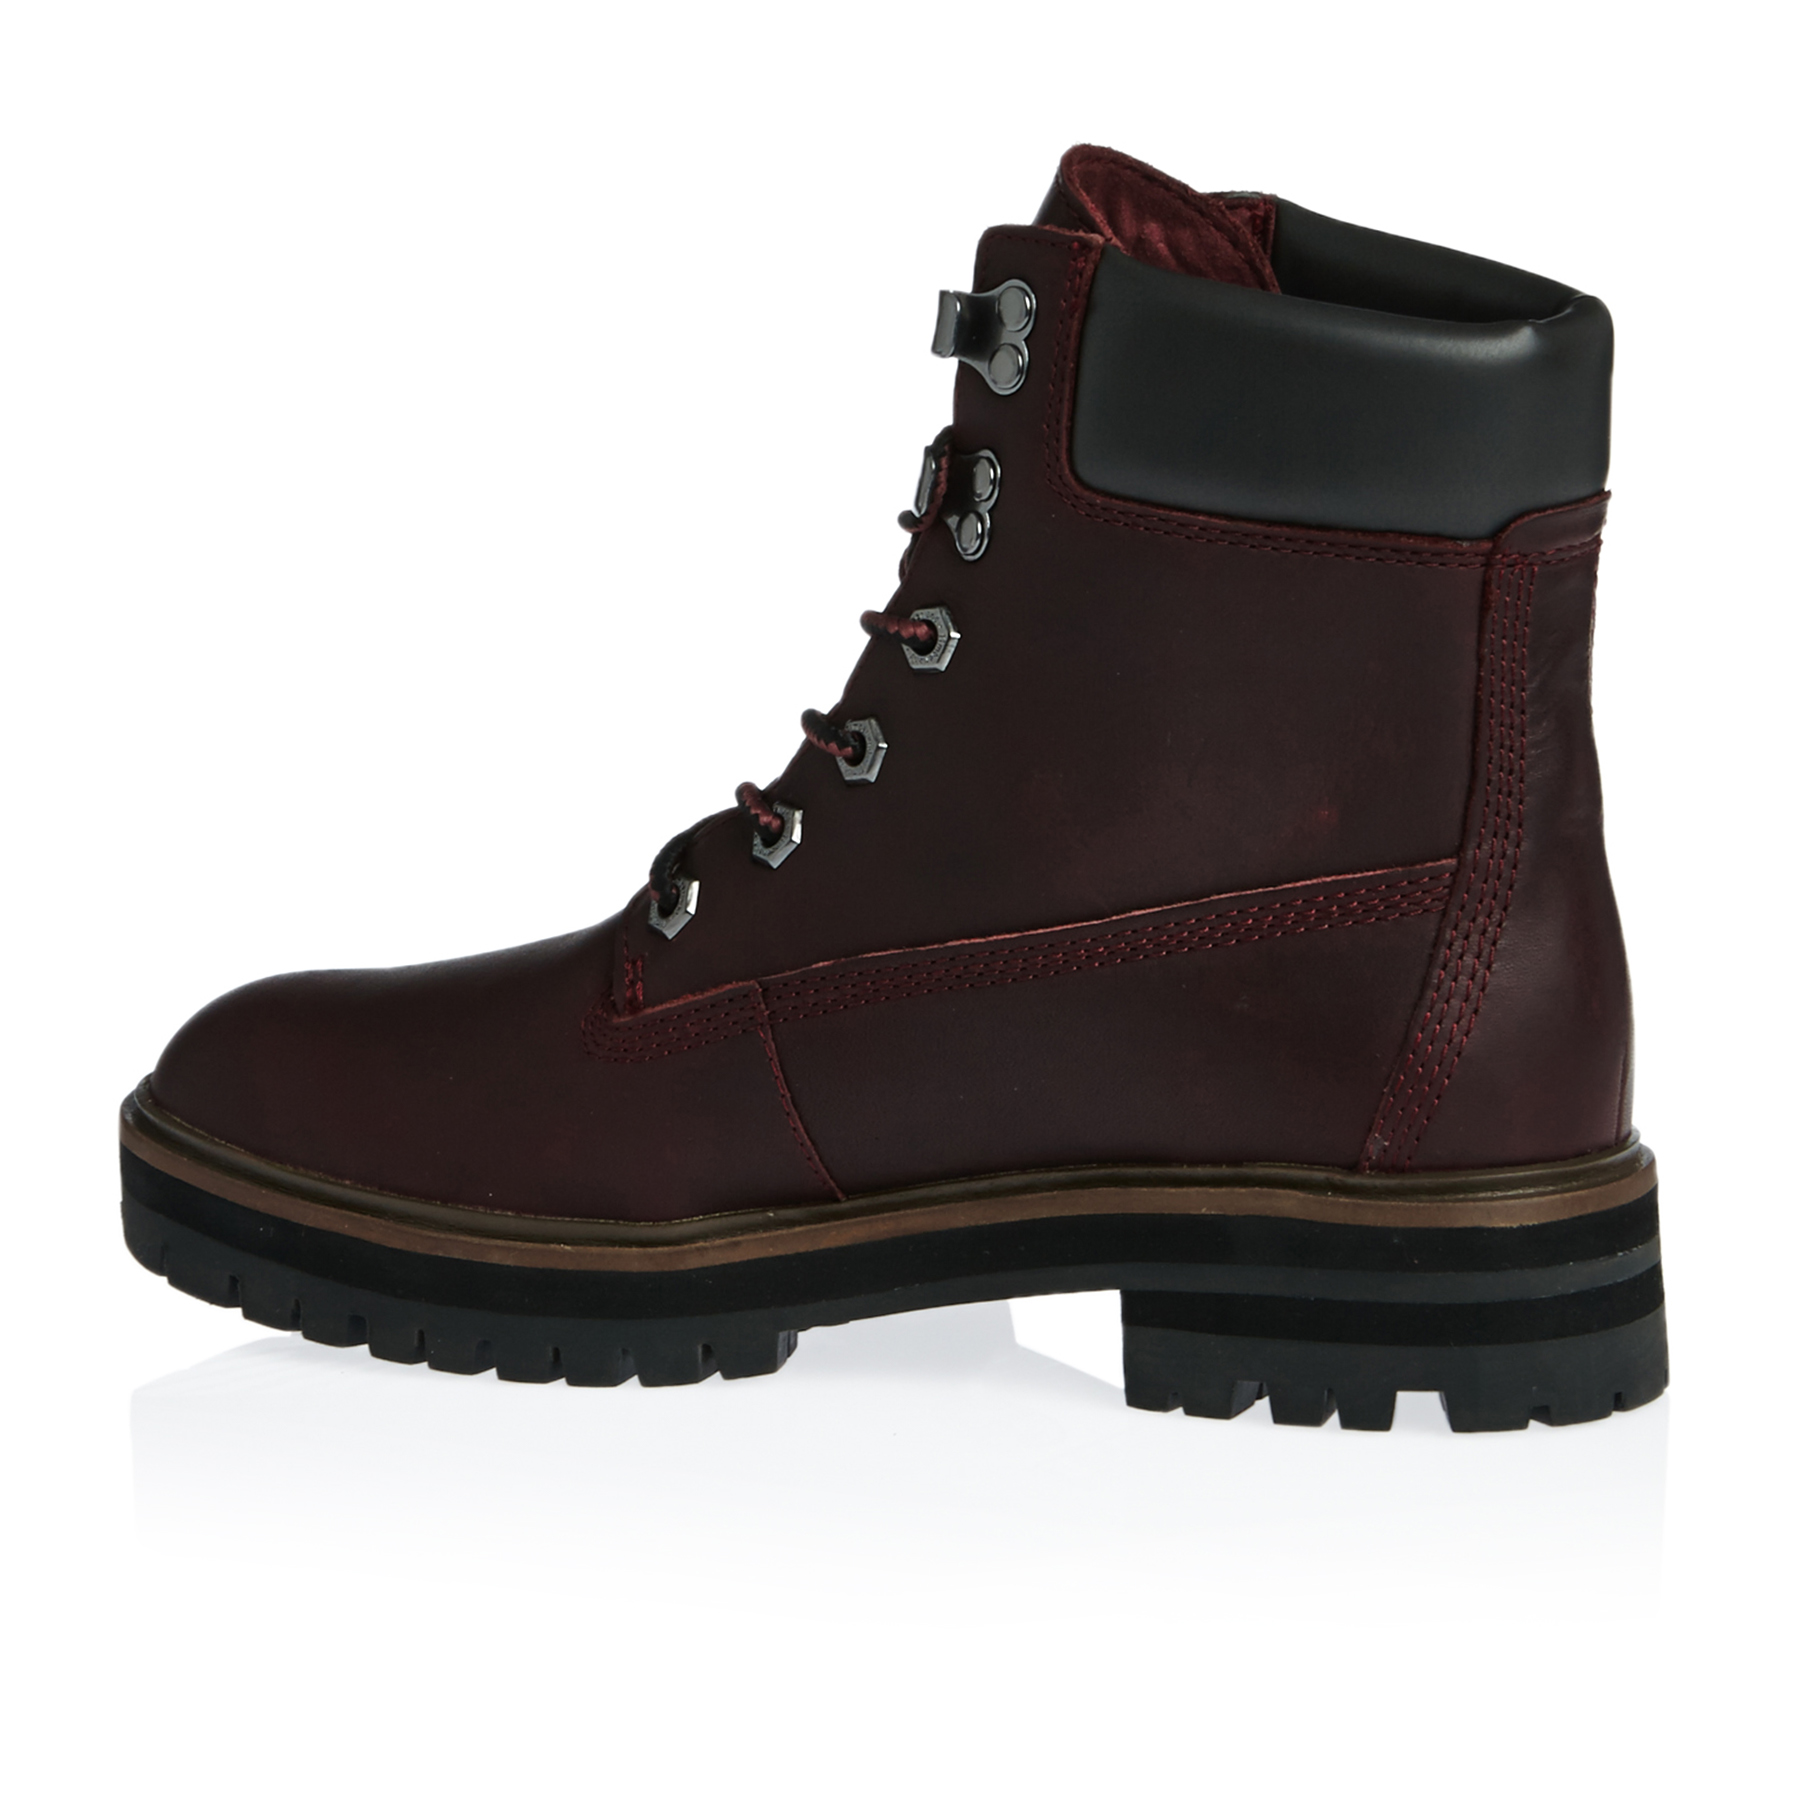 Timberland London Square 6in Womens Boots | Free Delivery